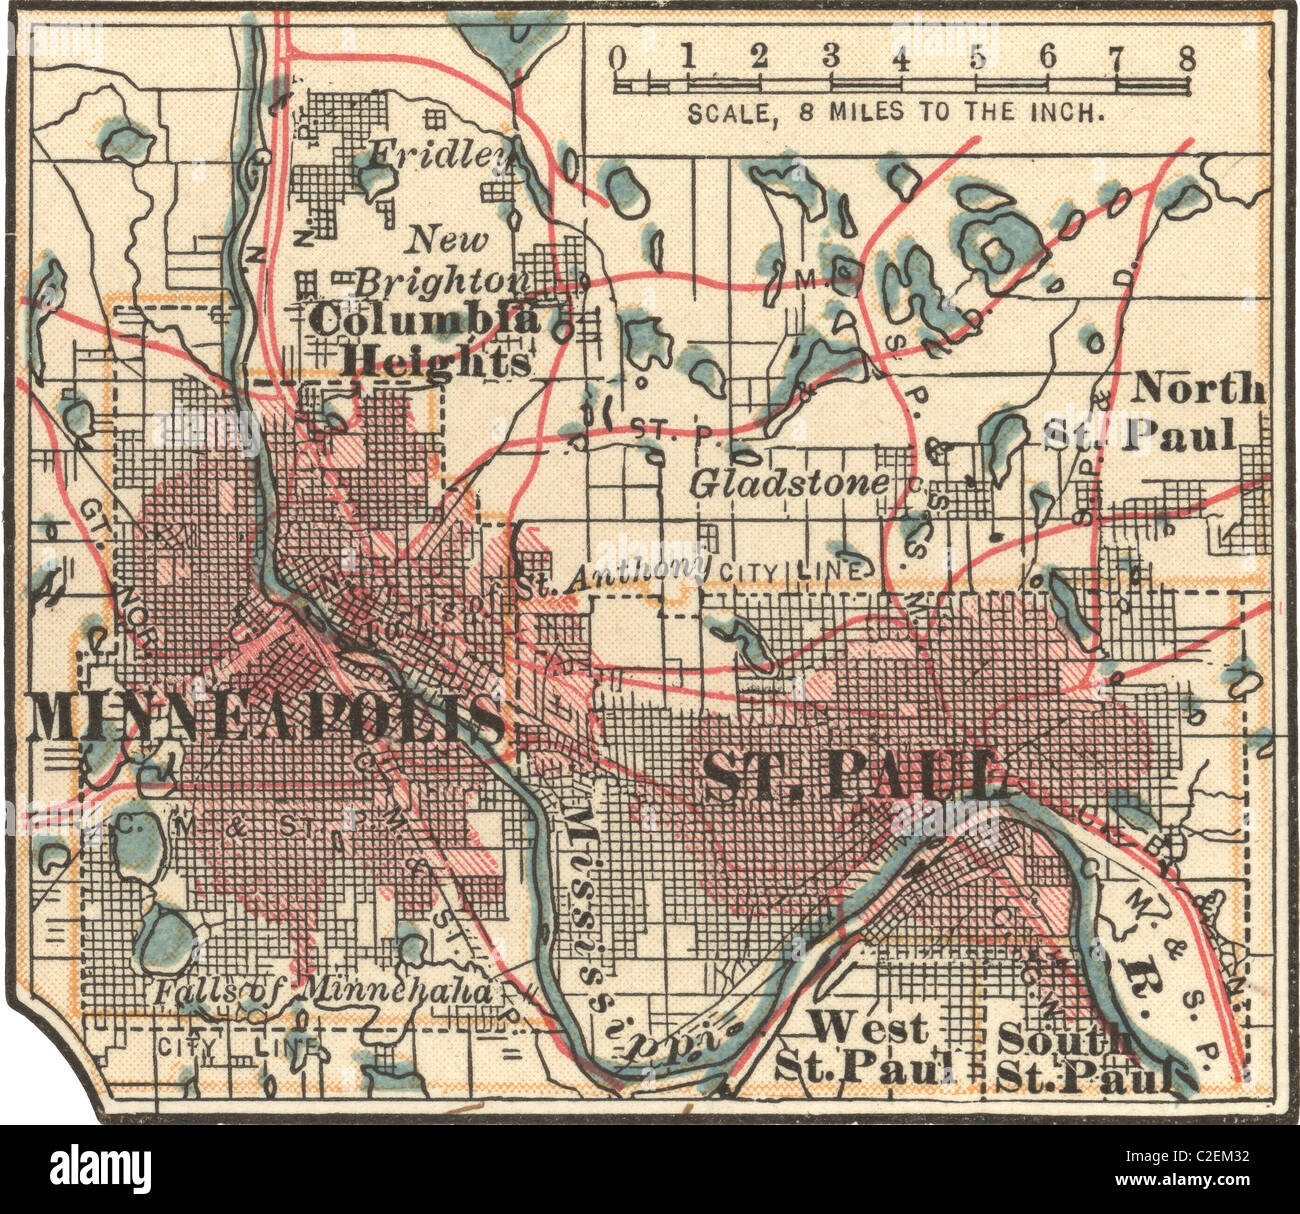 Map of Minneapolis, St. Paul and Minnesota Stock Photo: 35973142 - Alamy